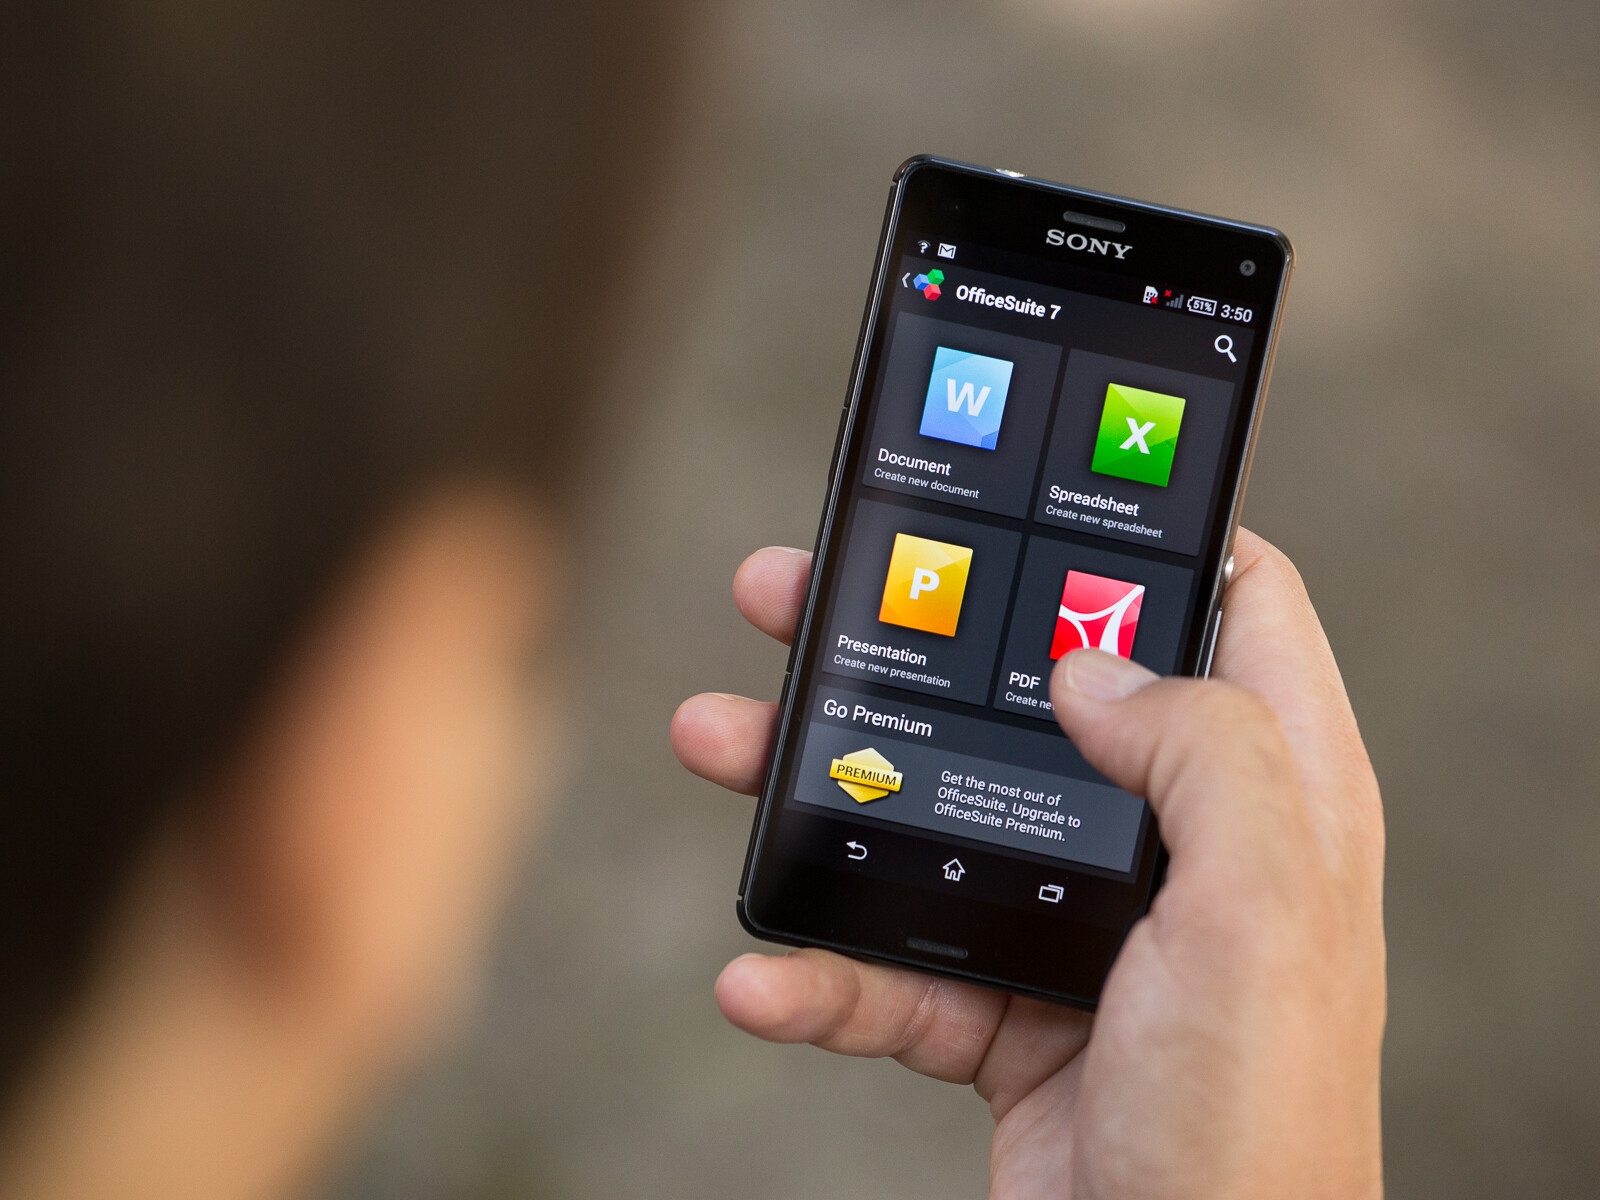 Sony Xperia Z3 Compact battery life test results: the new